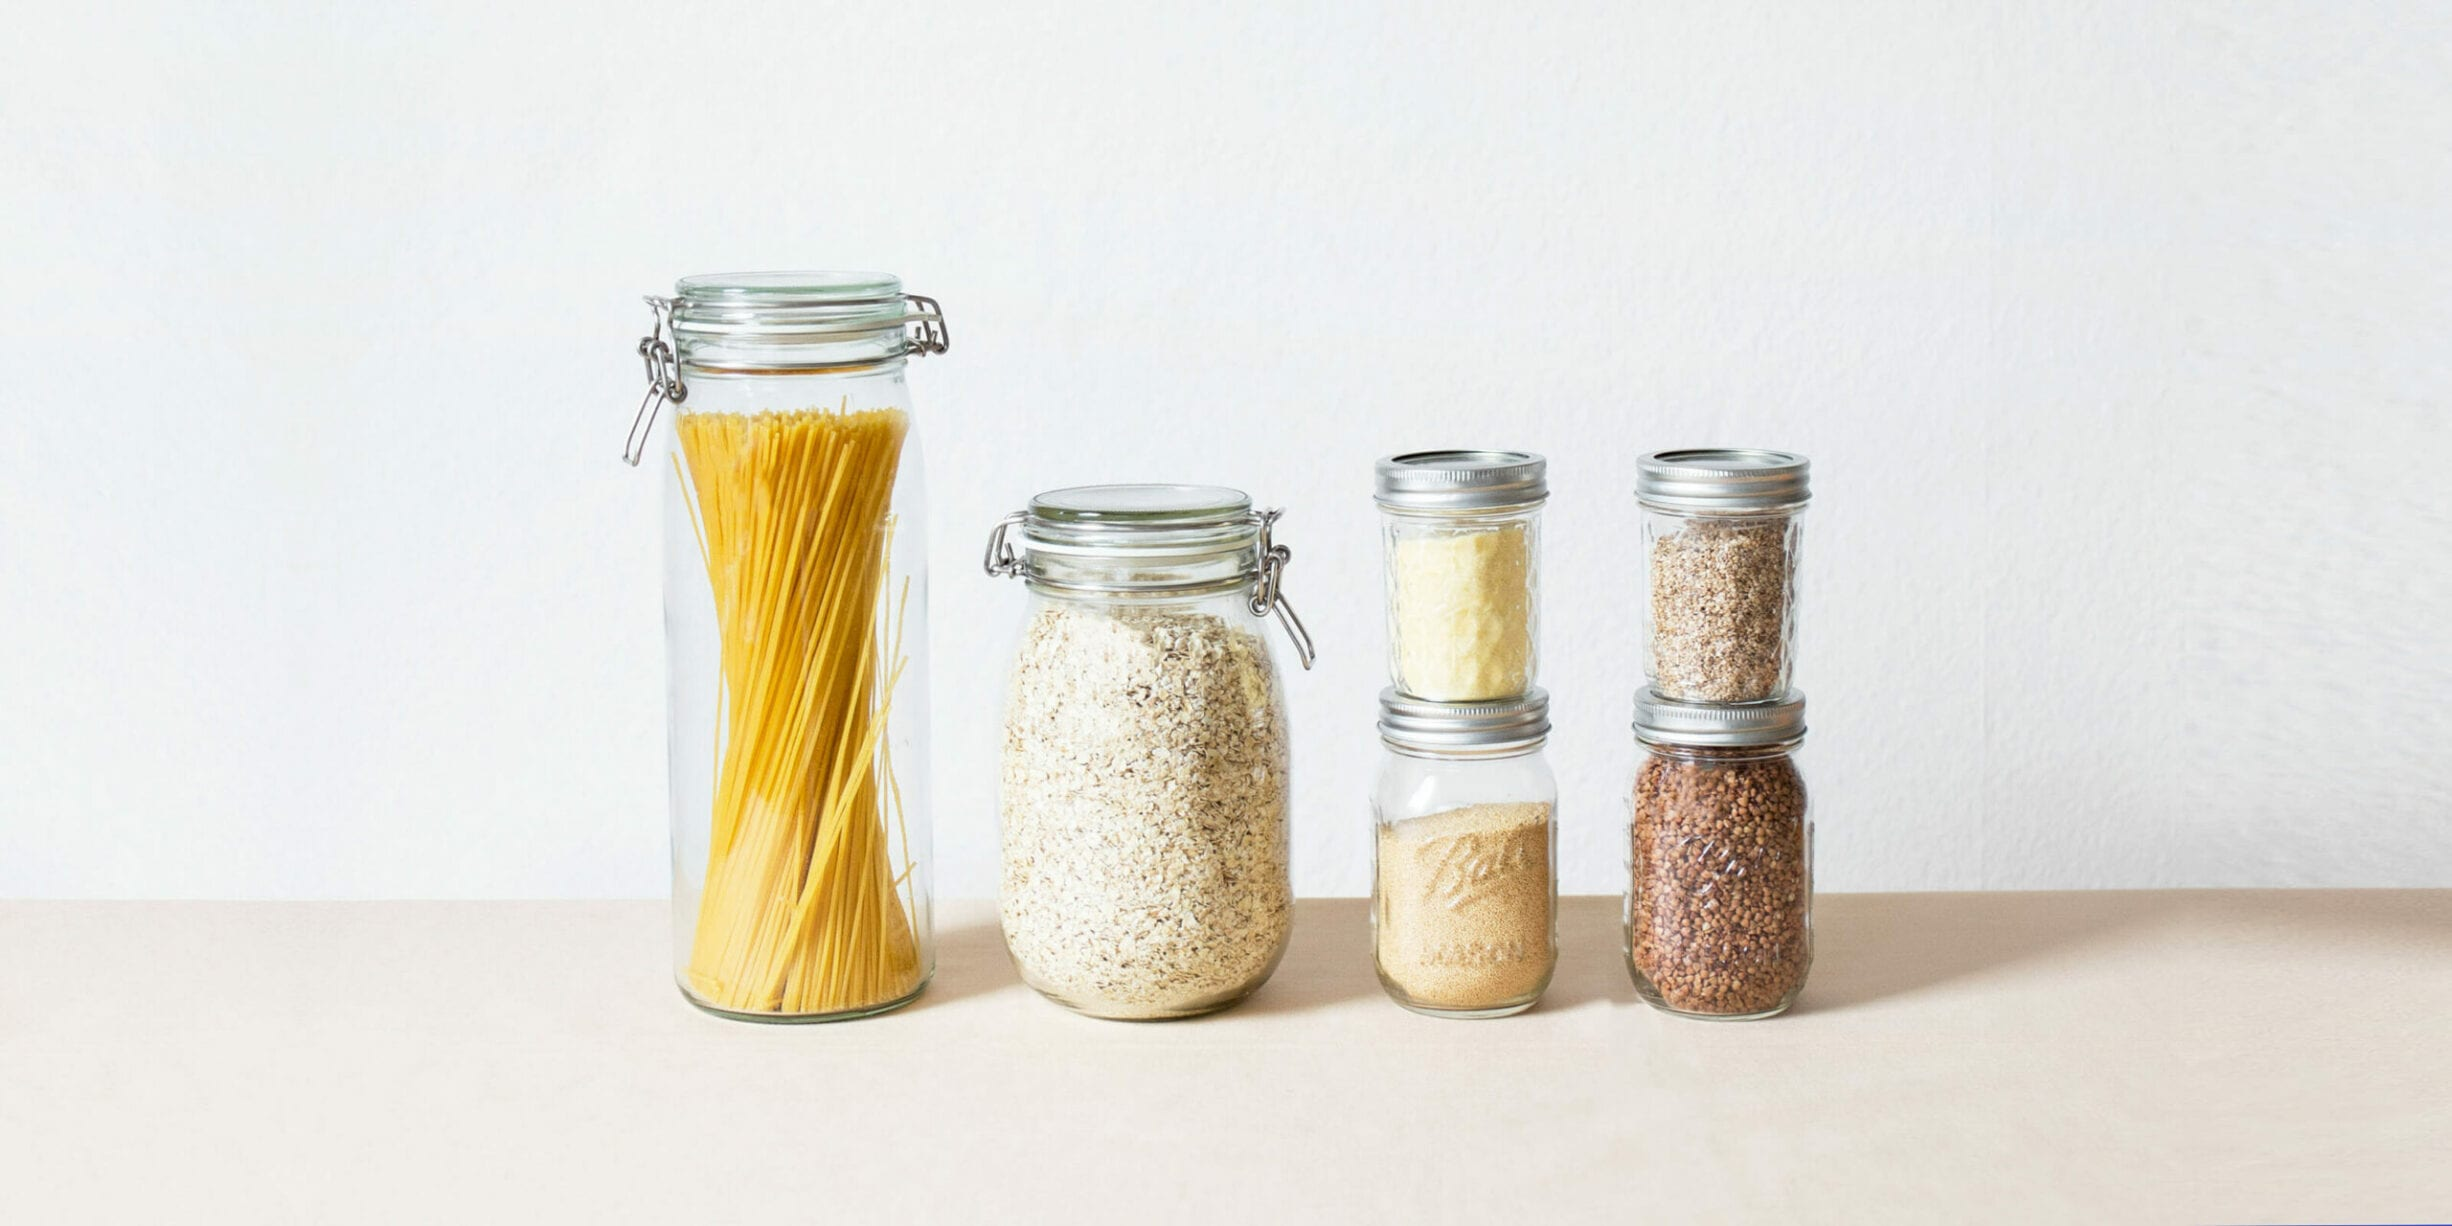 example of precycling using glass mason jars with pasta and spices